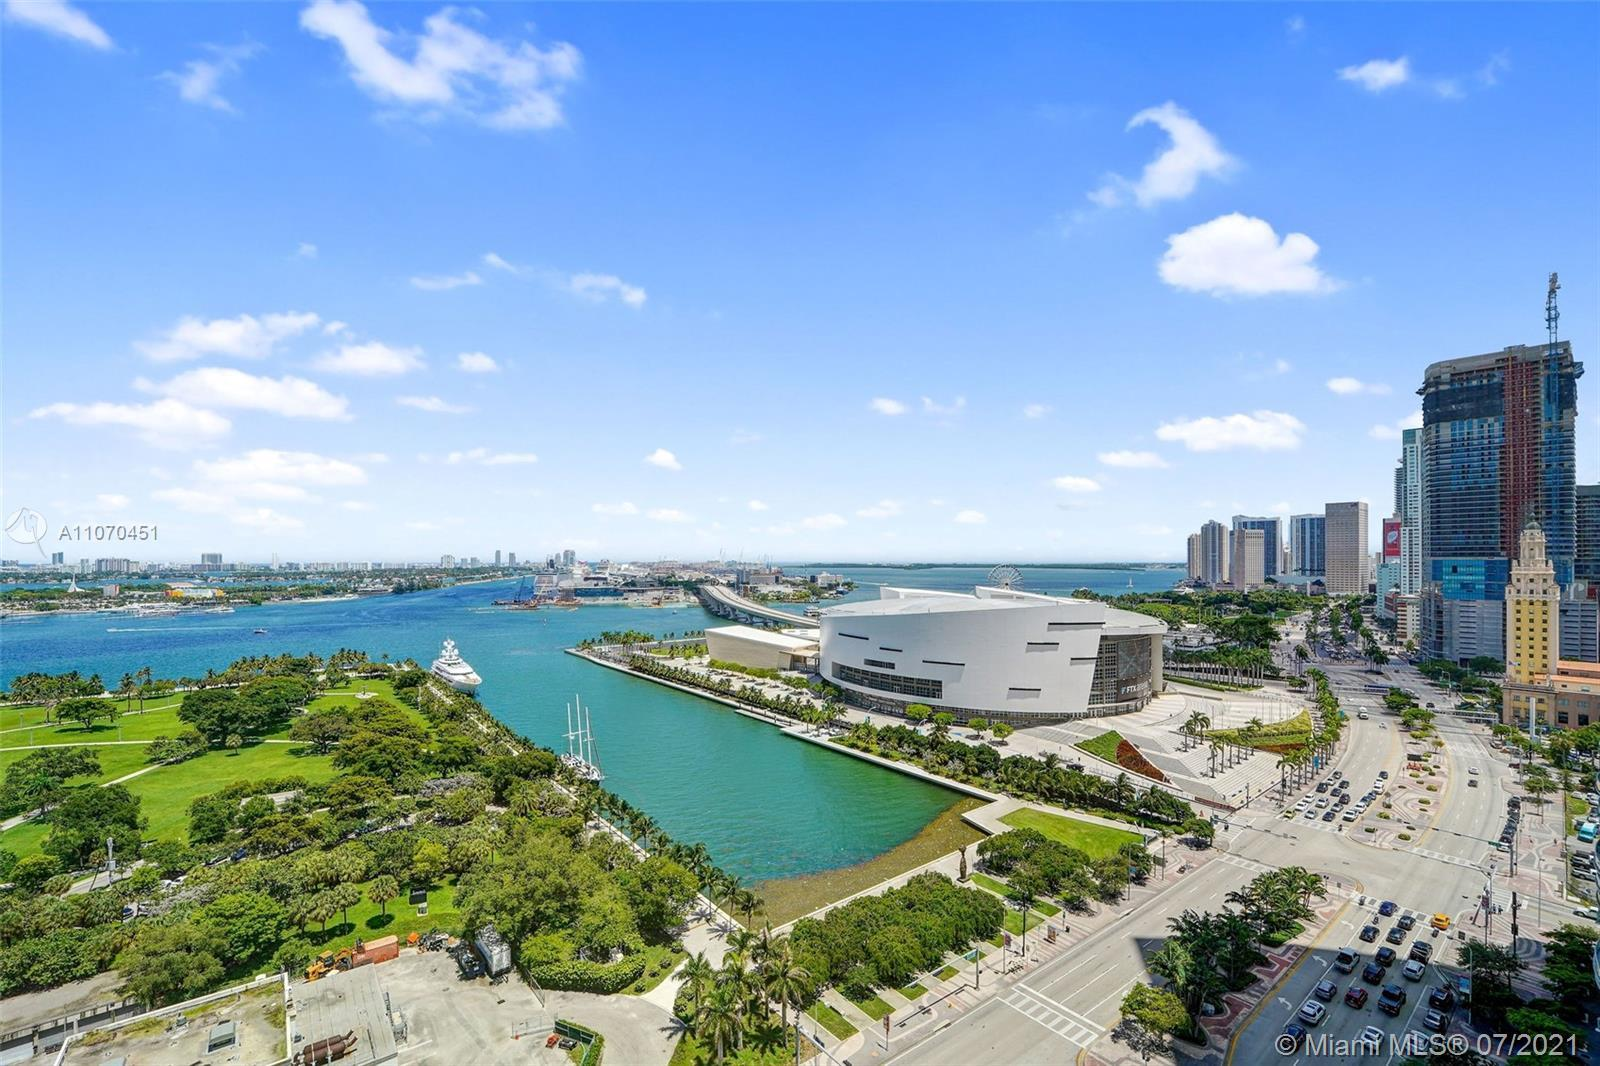 Miami condo in exclusive 900 Biscayne; currently rented; 1 BR plus a Den & 2 Full Bathrooms; Full Am